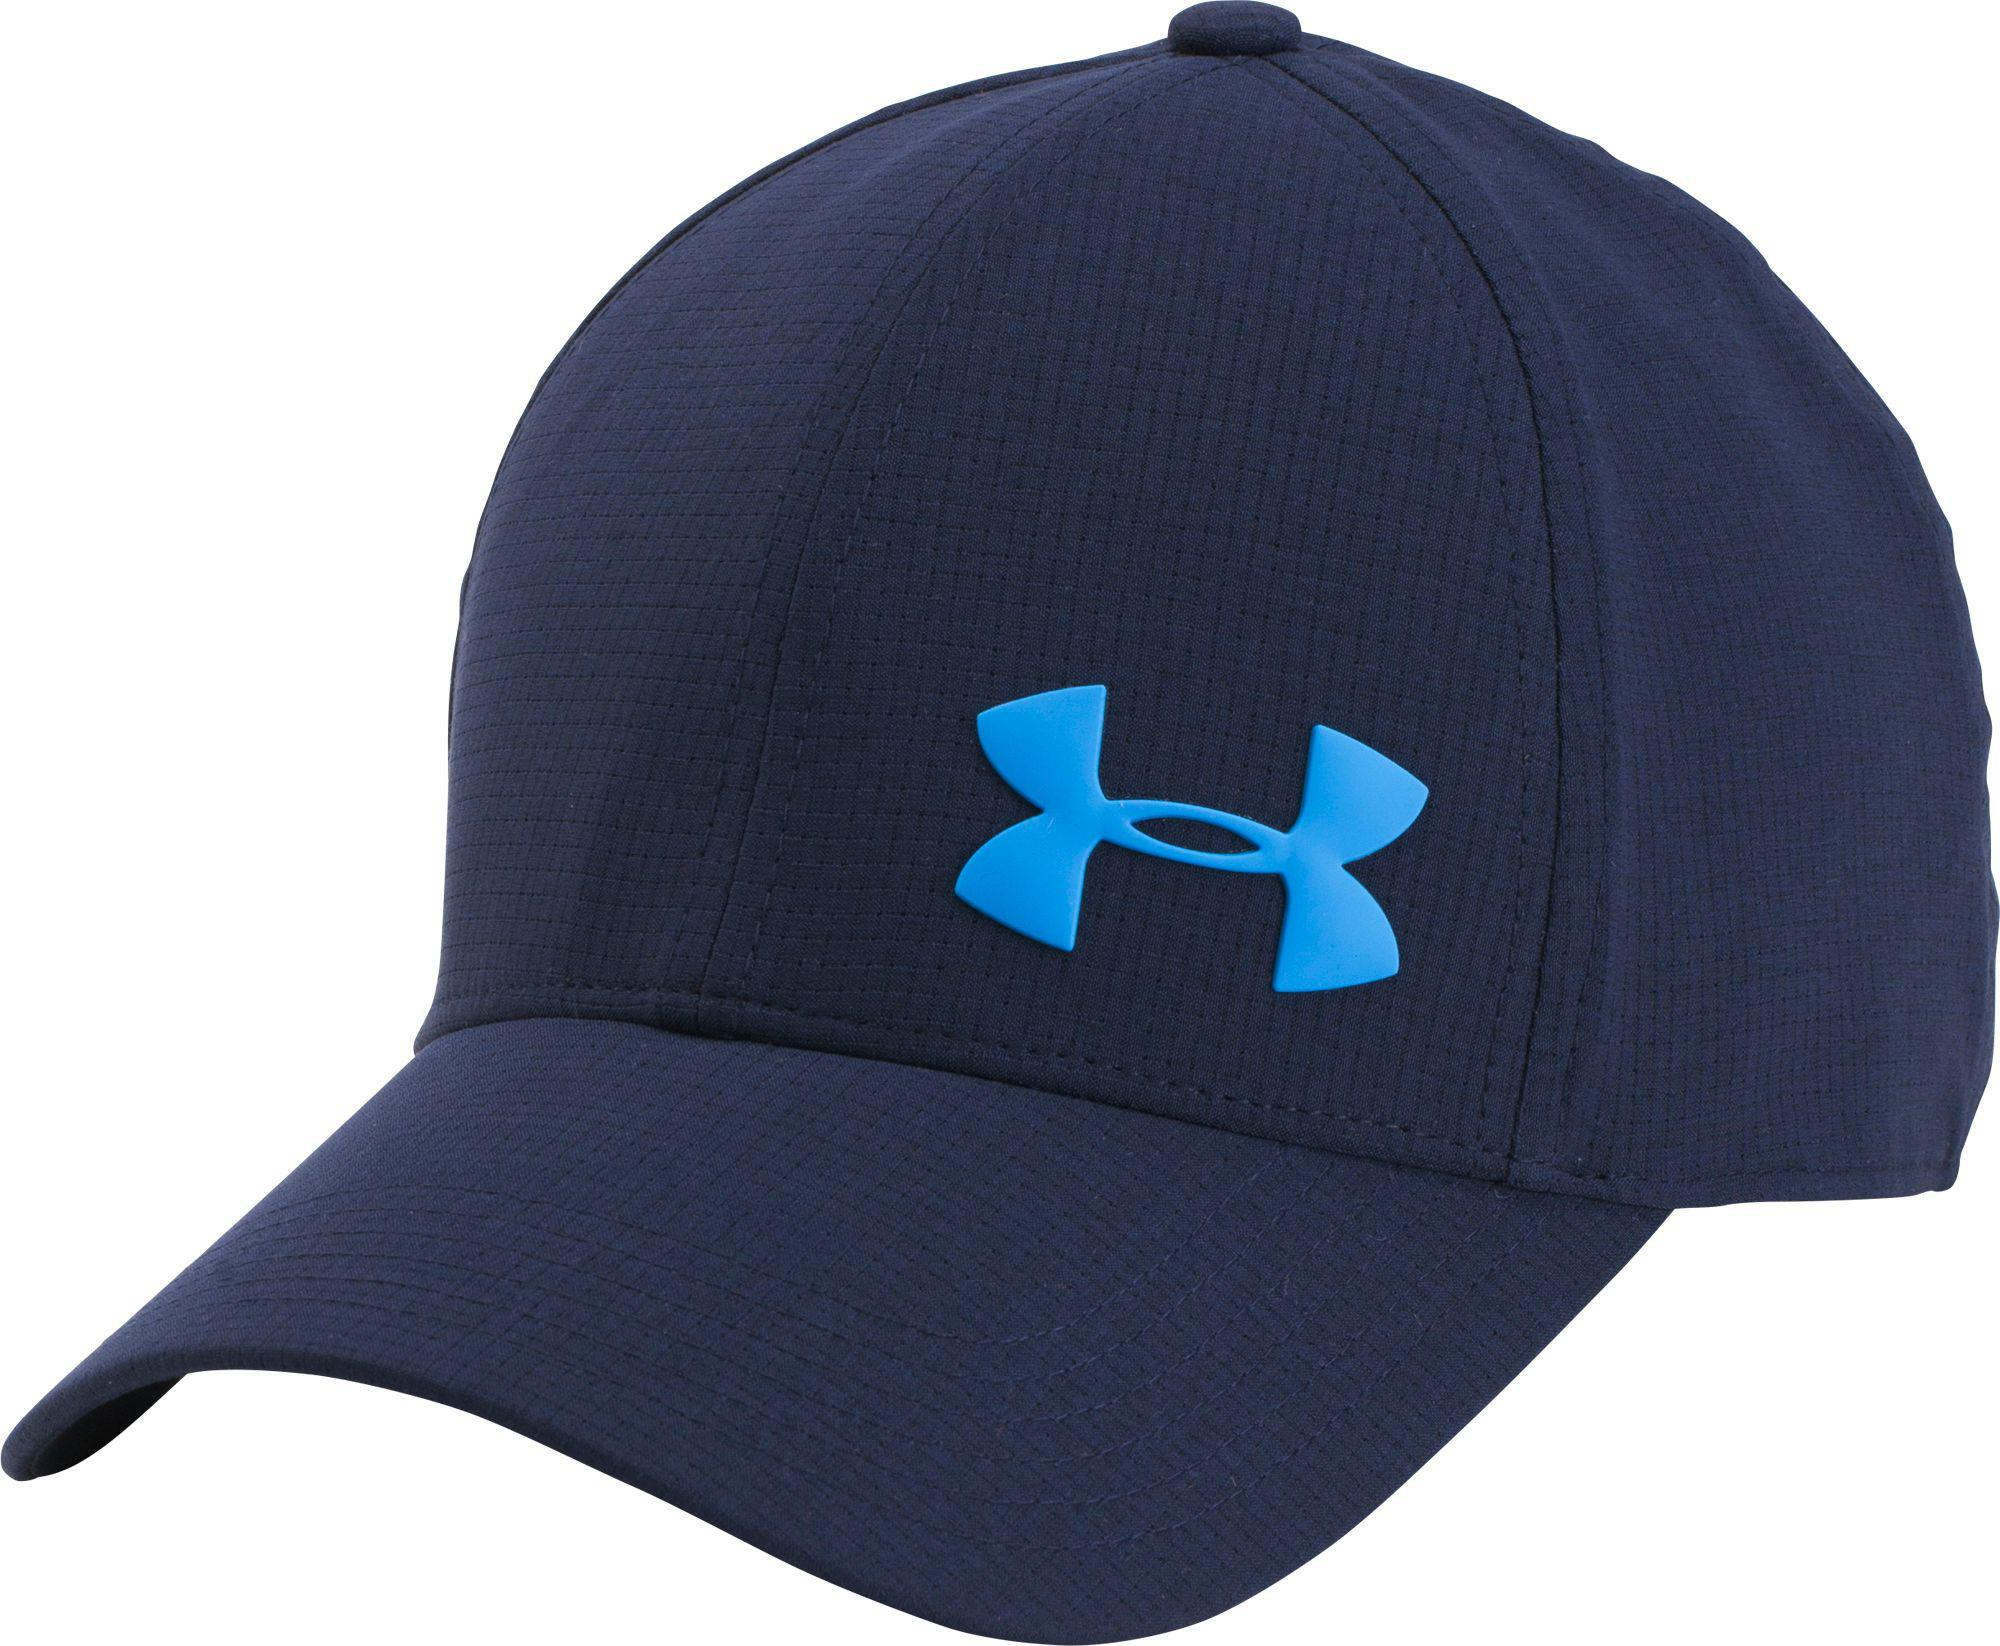 Lyst - Under Armour Airvent Core Hat in Blue for Men 5d2c0d31377e